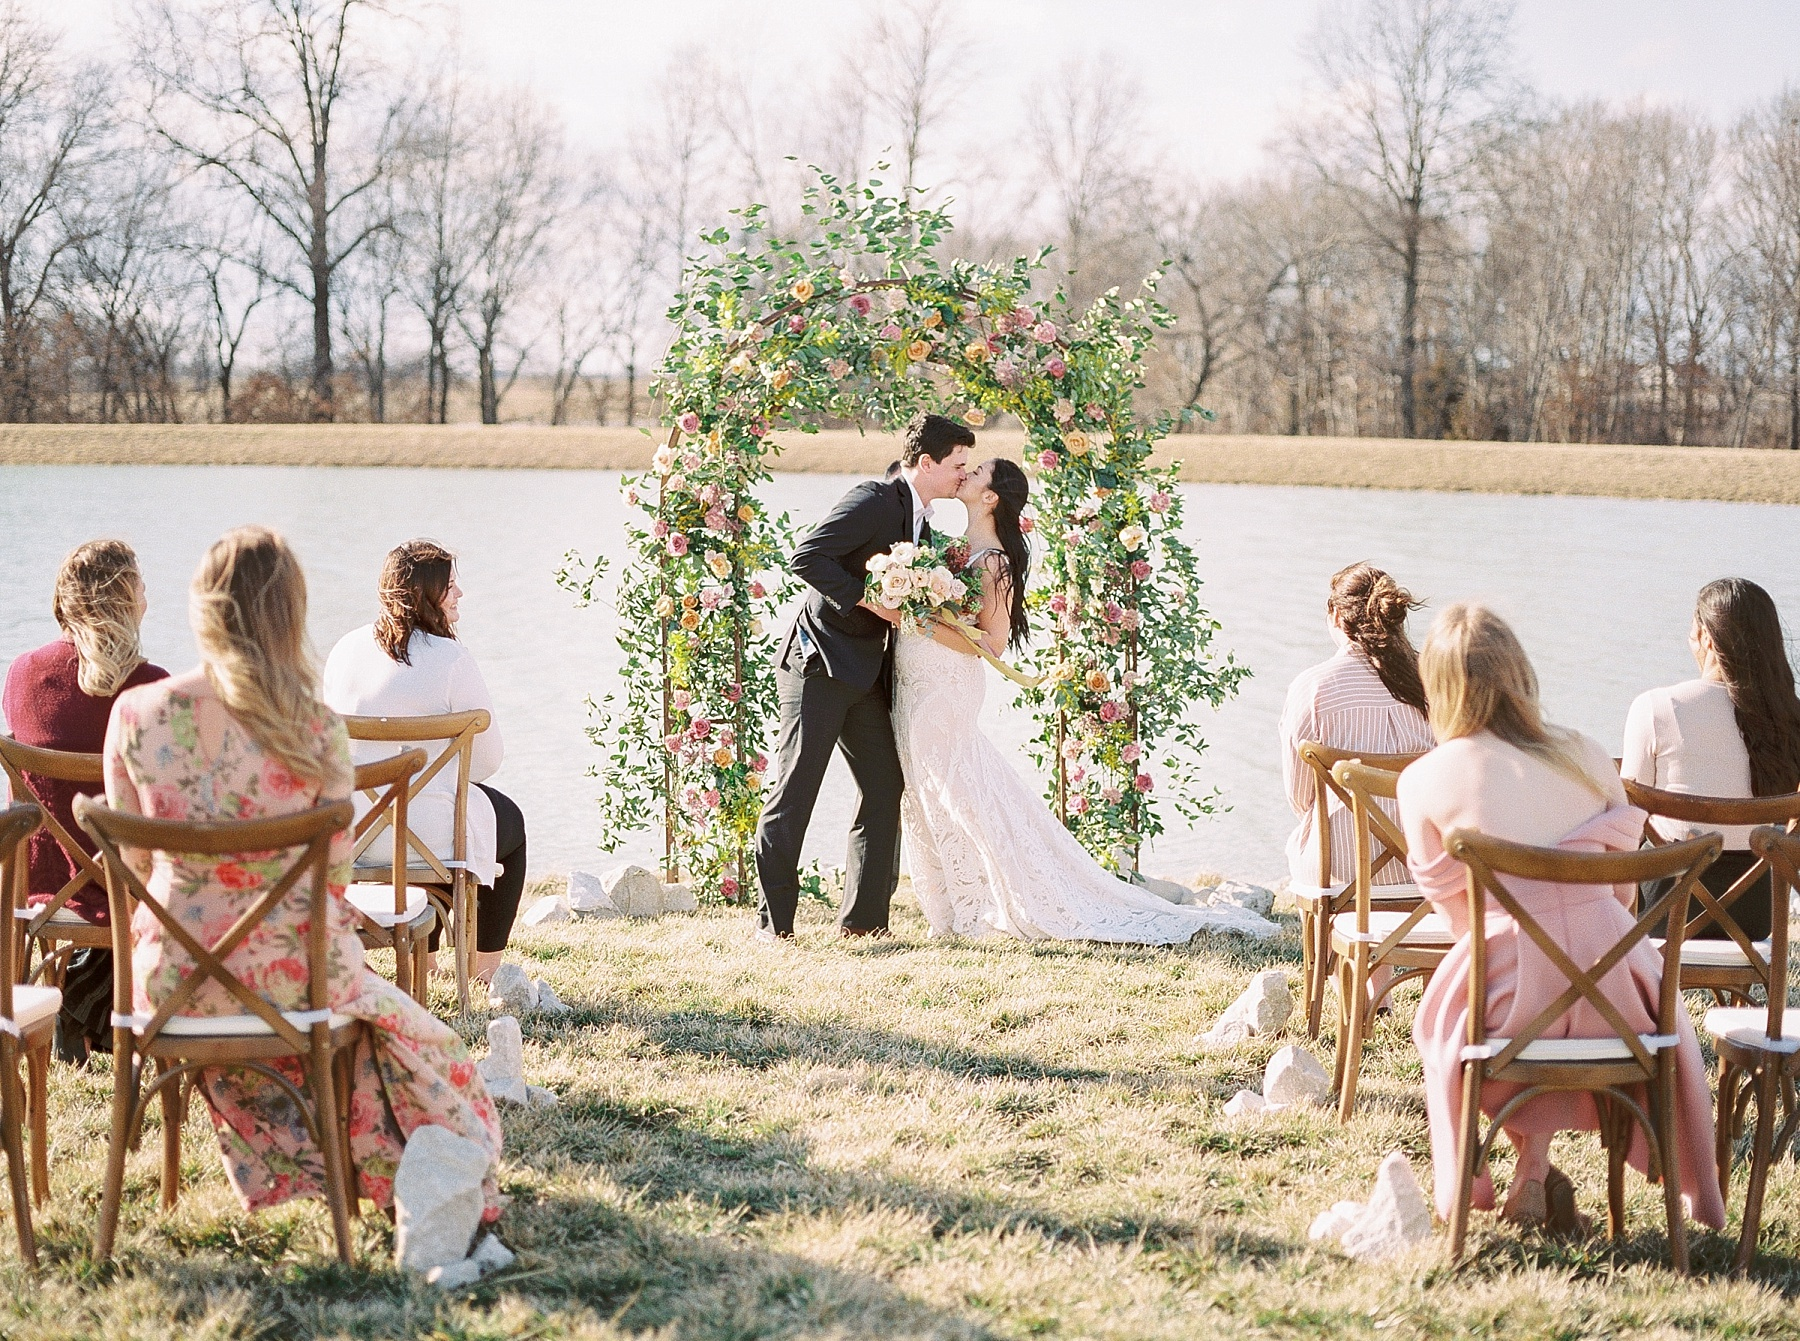 Lakeside Sunset Wedding with Magnificent Abundance of Blooms at Emerson Fields by Kelsi Kliethermes Photography Best Missouri and Maui Wedding Photographer_0009.jpg